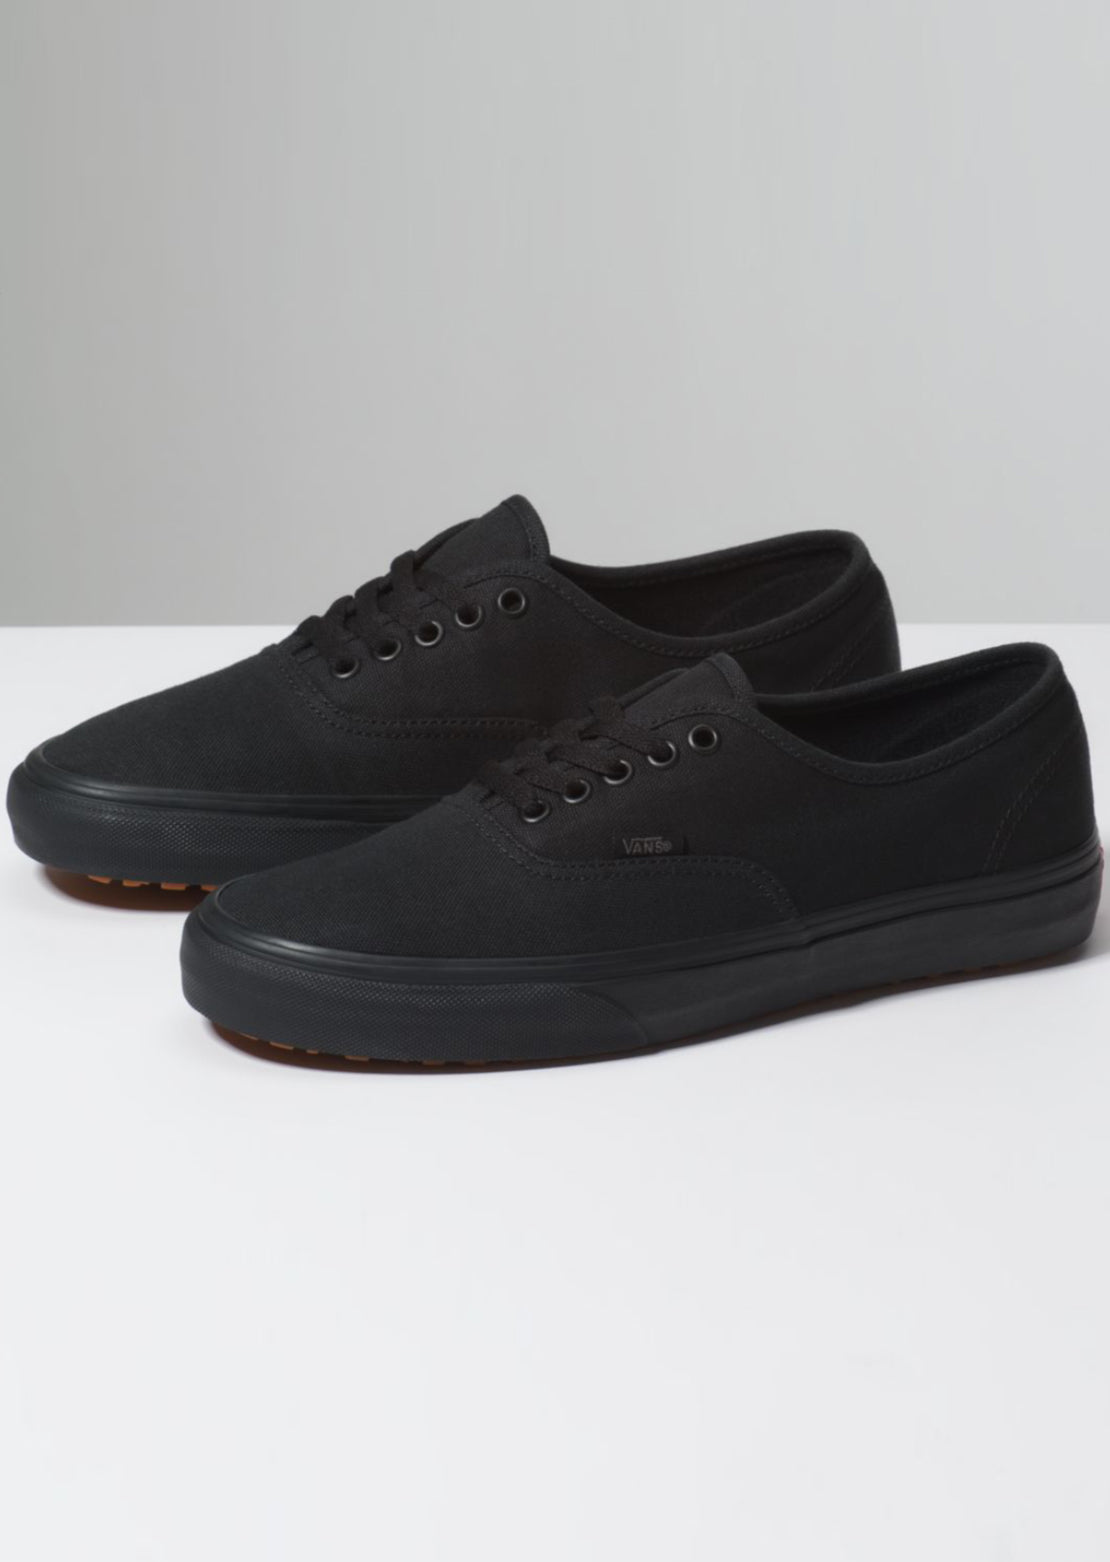 Vans Men's Made For The Makers Shoes Authentic UC Black Black